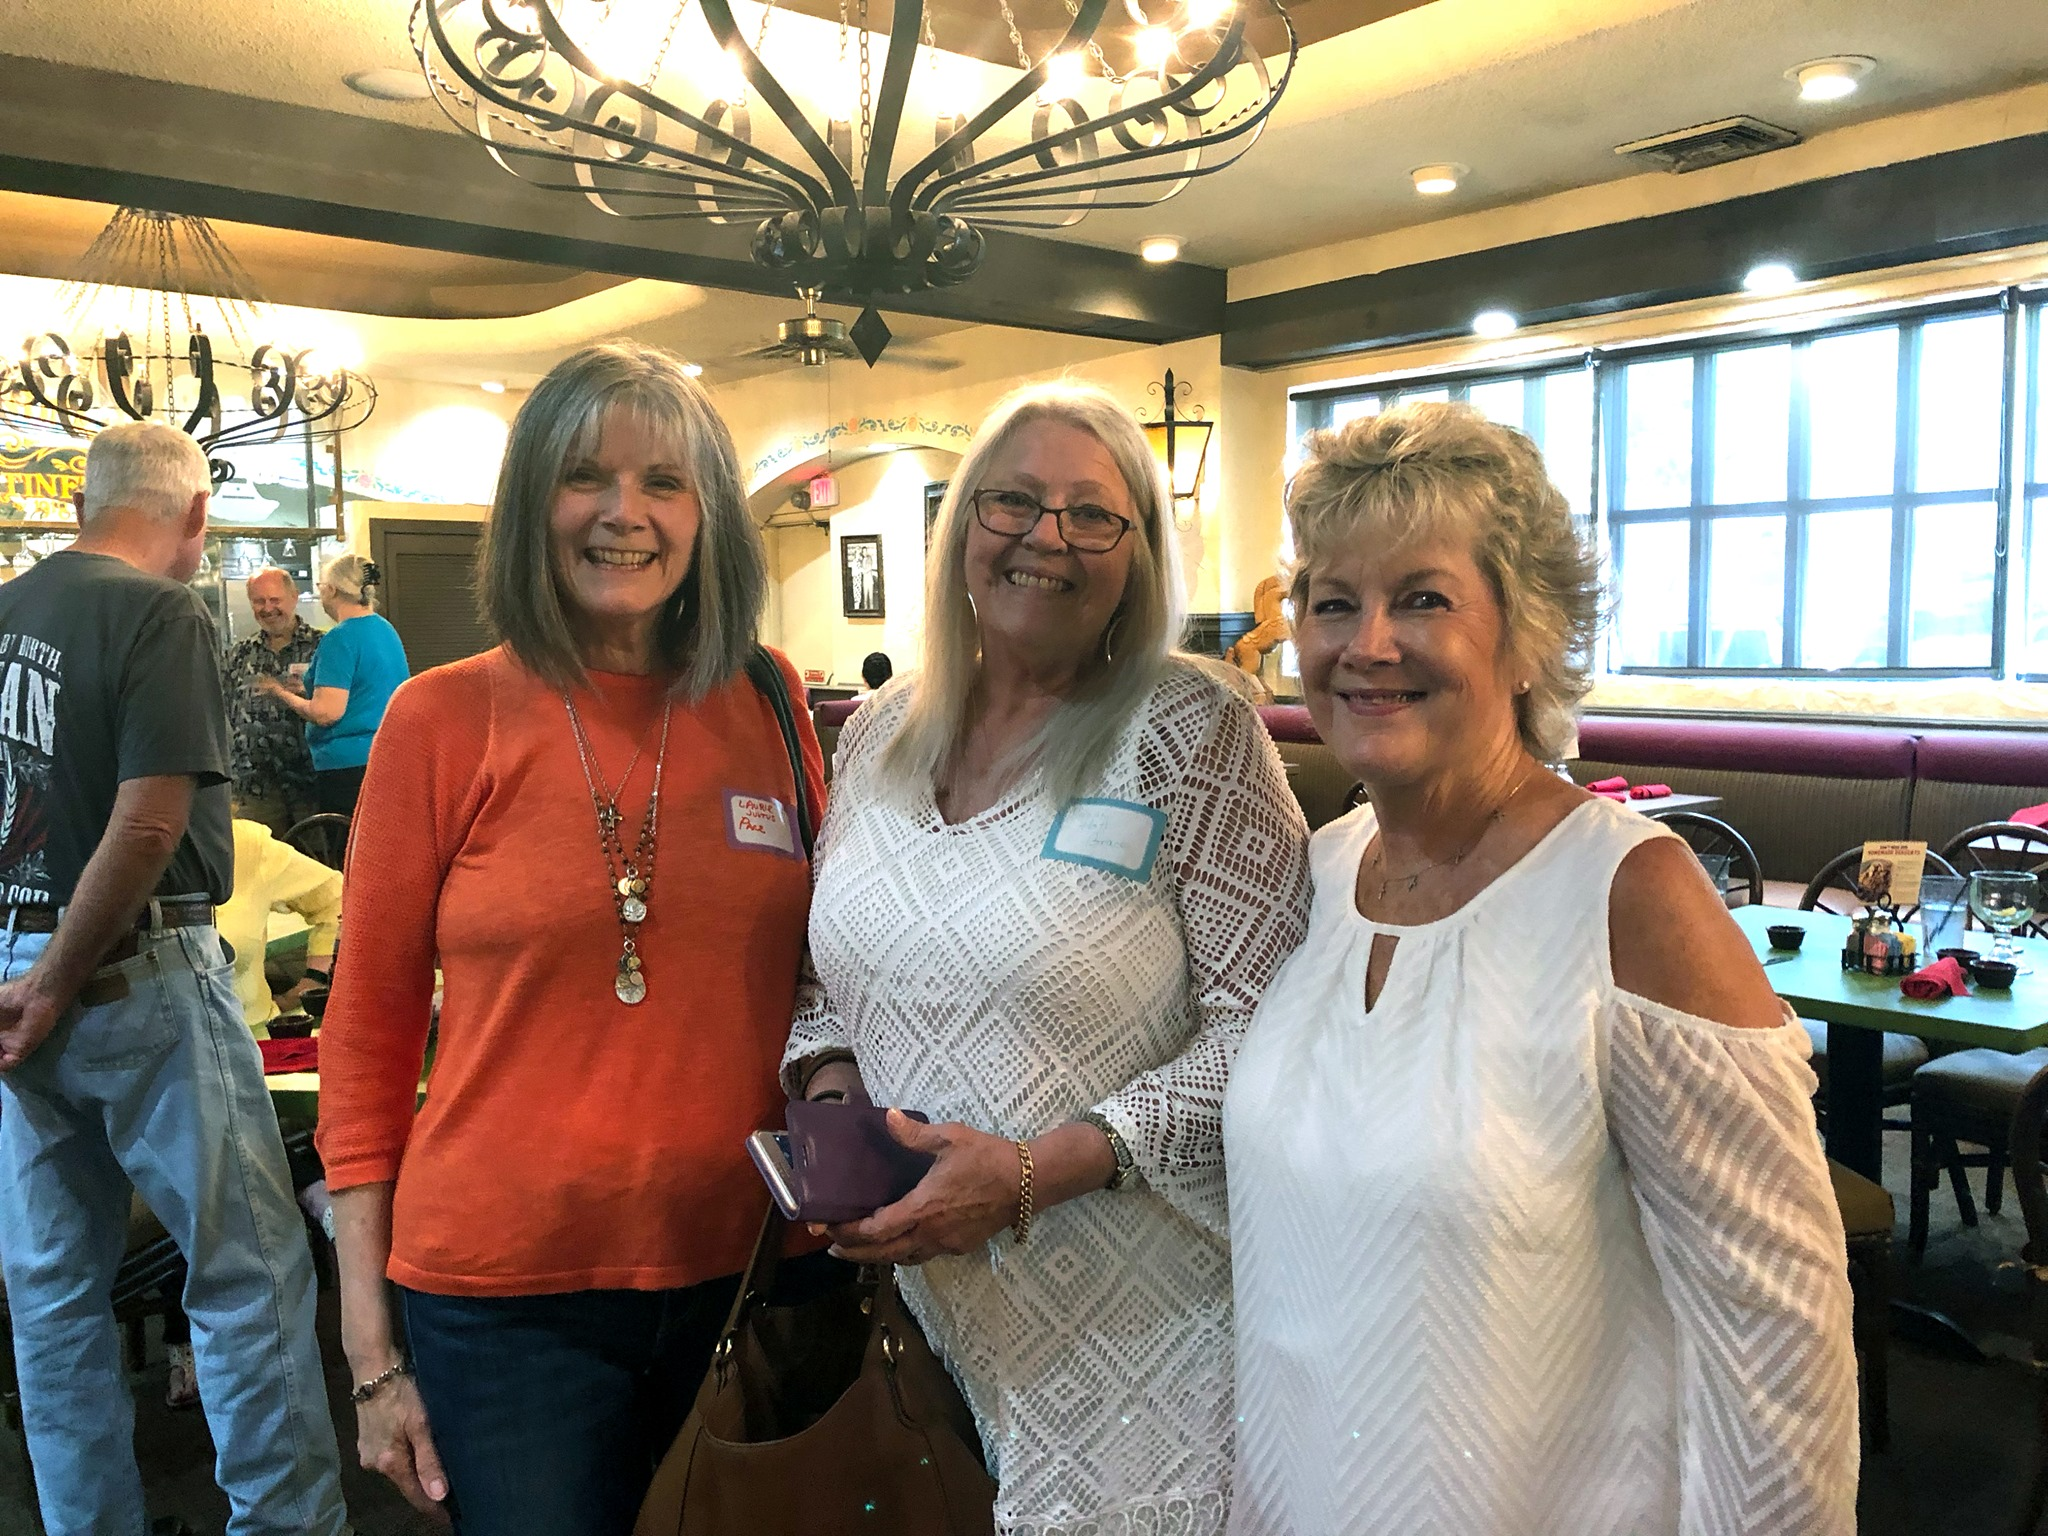 Aug 2019 Laurie Justus Pace Sarah Hott Grace and Nancy Woodruff Pate .jpg